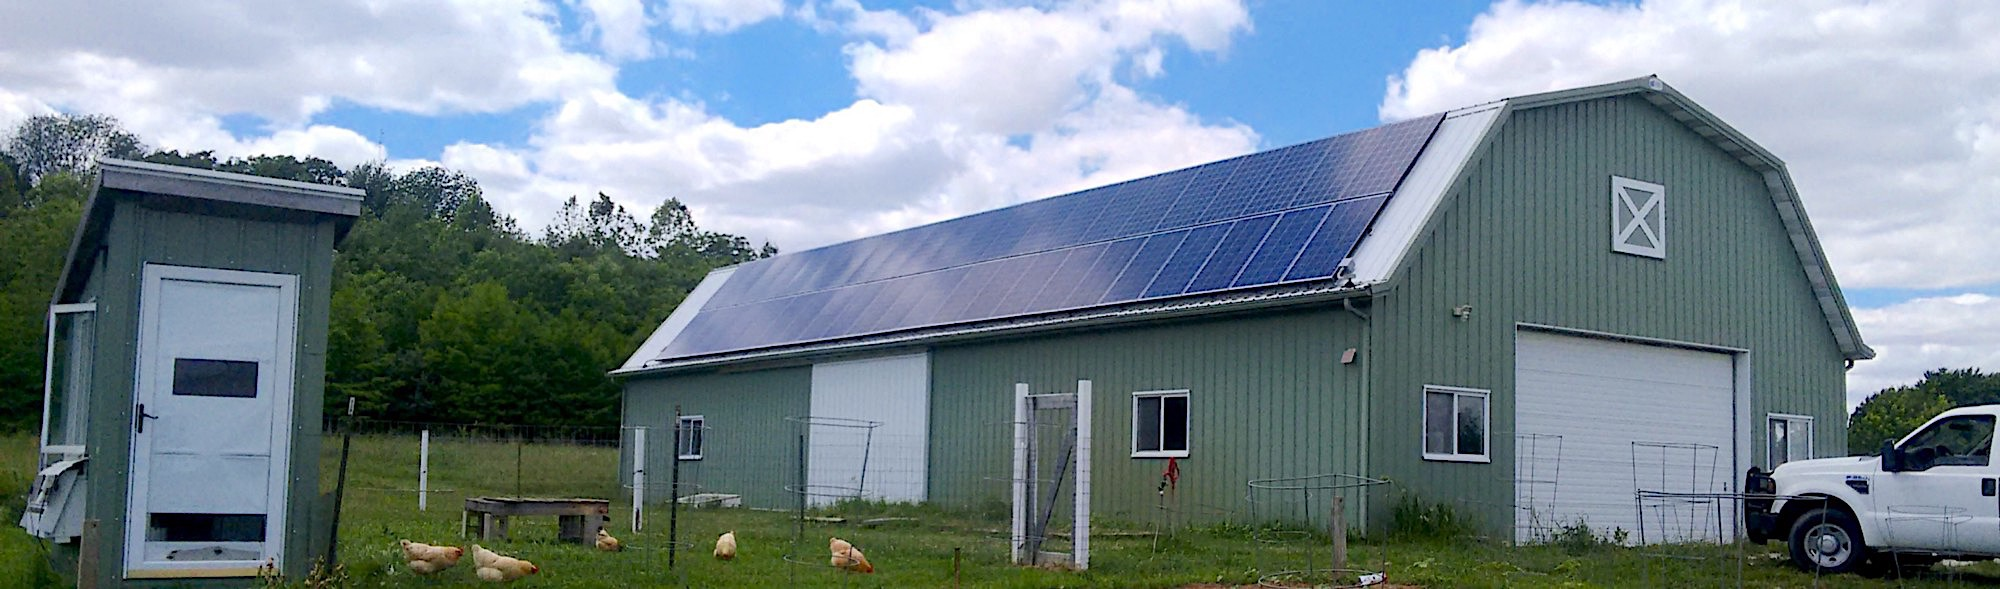 Indiana's governor just signed a law that will cripple the state's solar industry